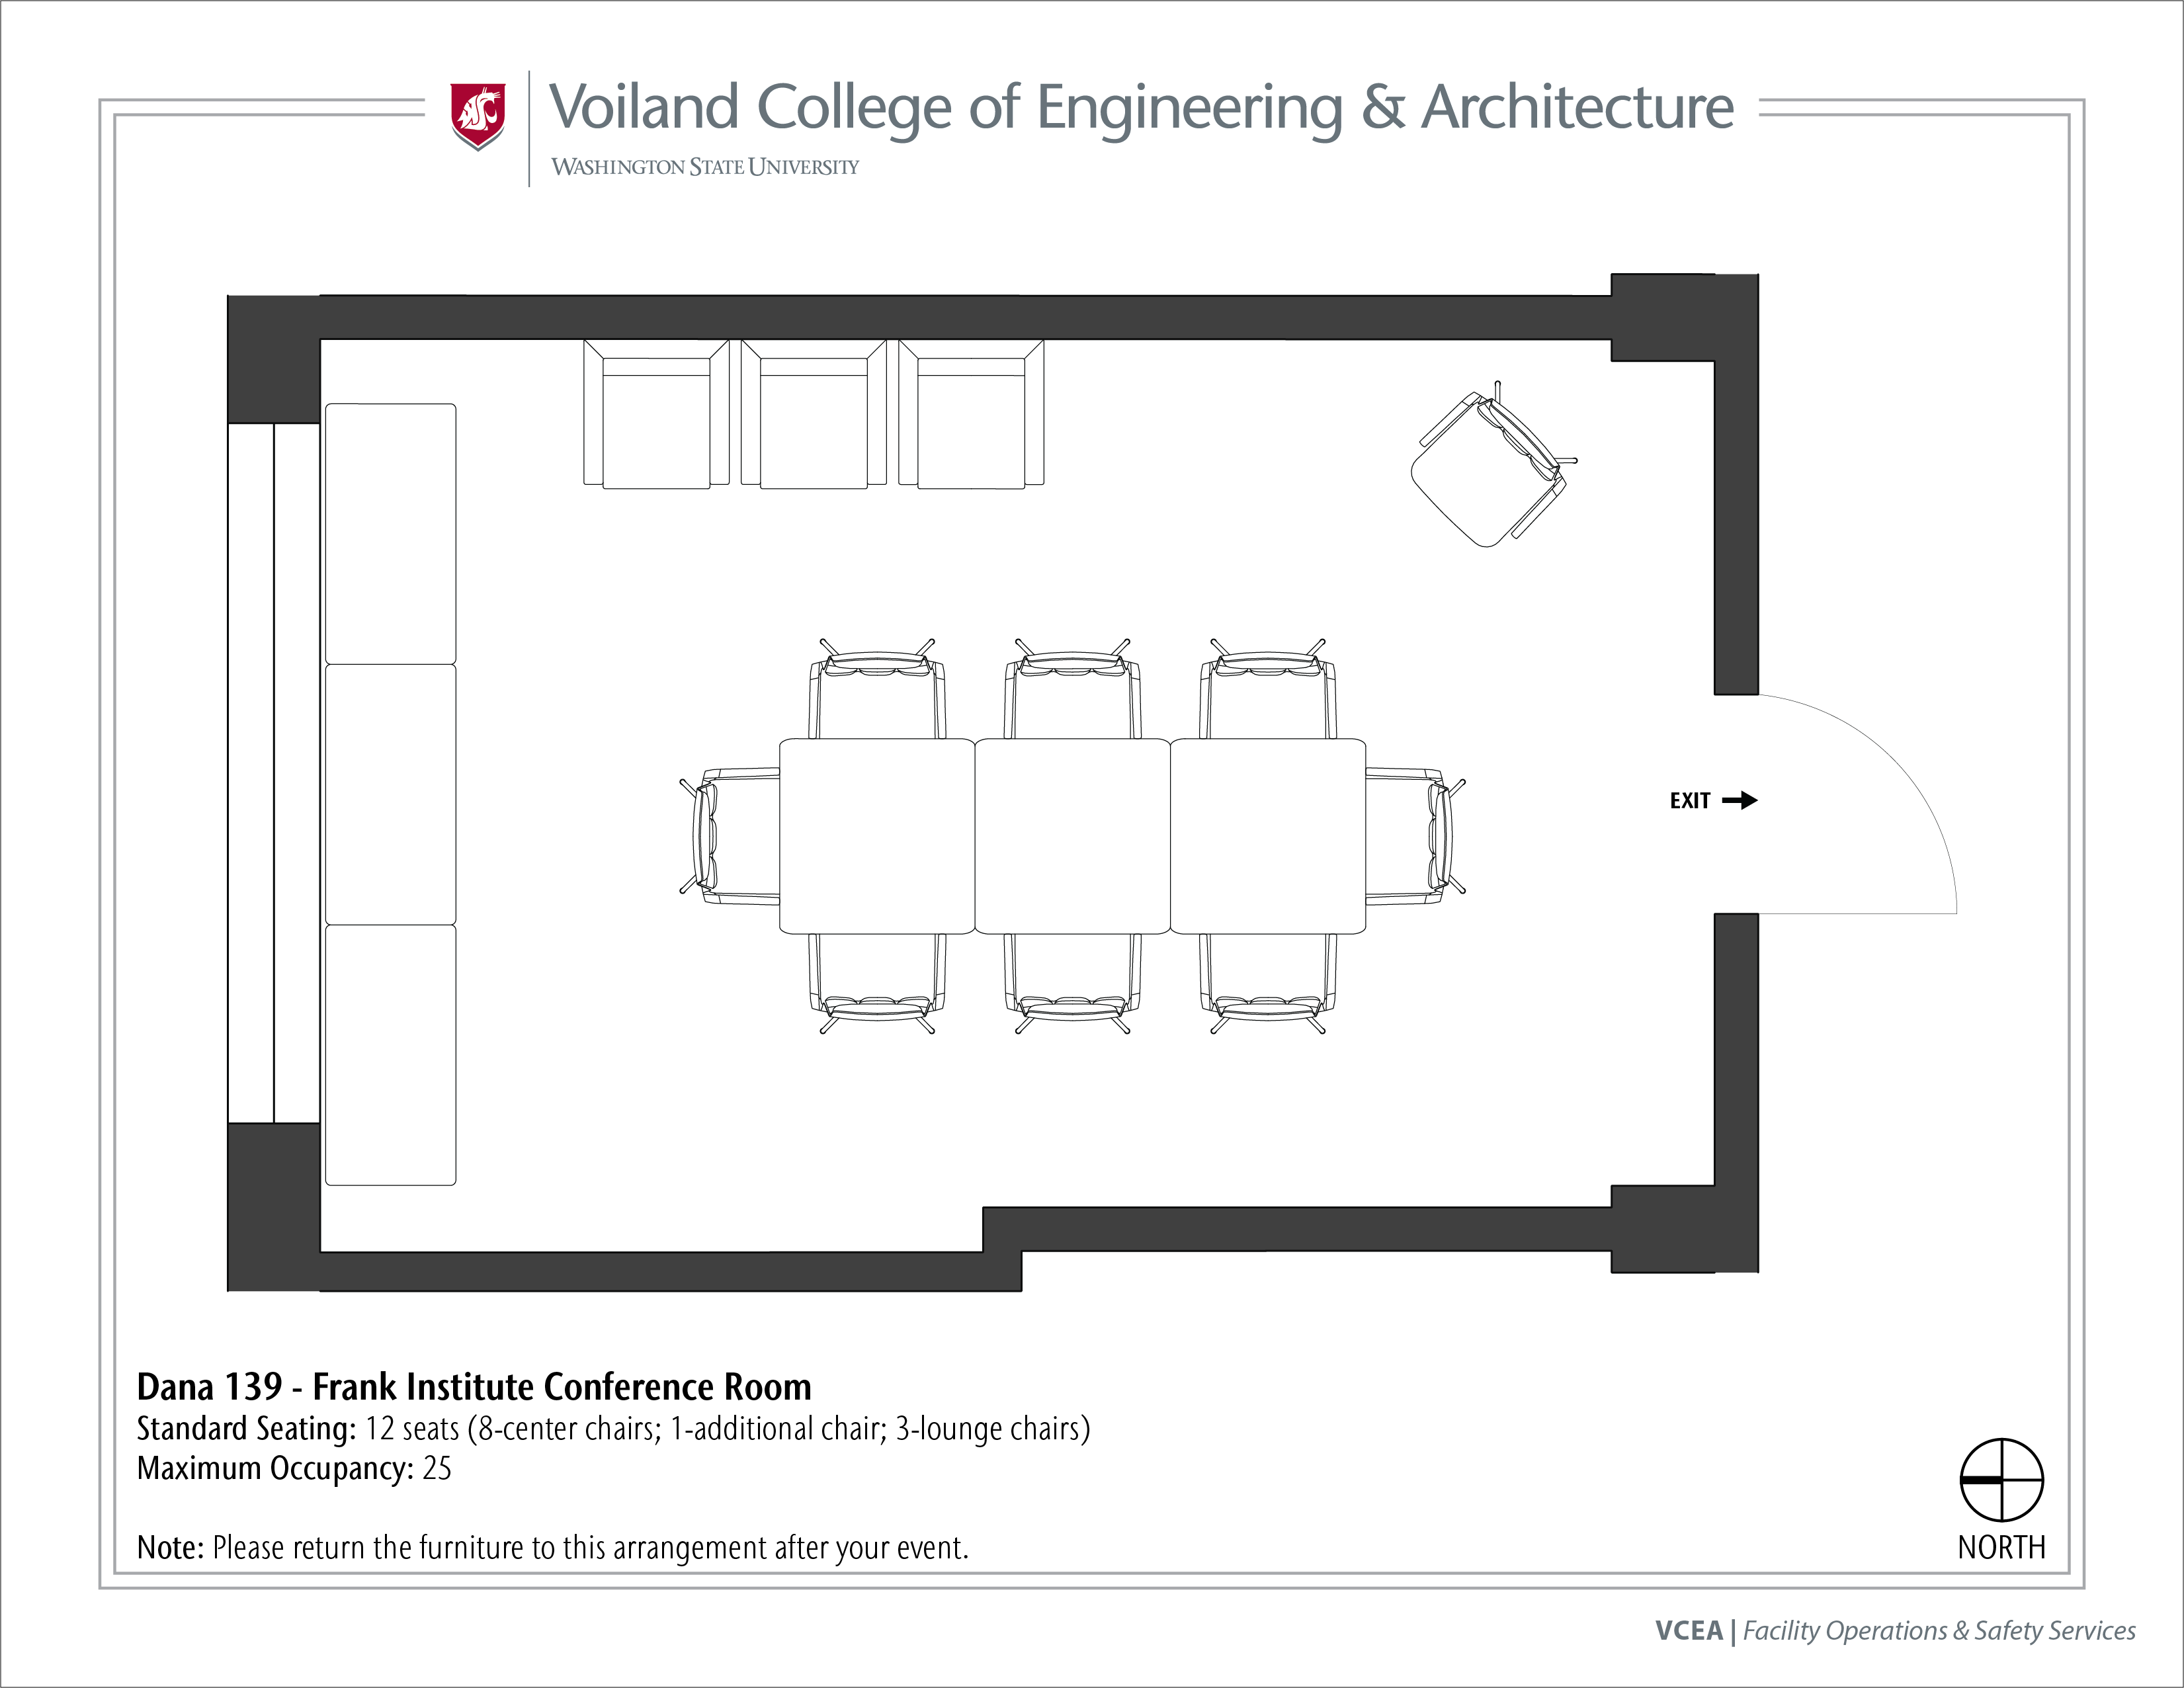 Layout of Dana 139, Frank Institute Conference Room, at WSU Pullman